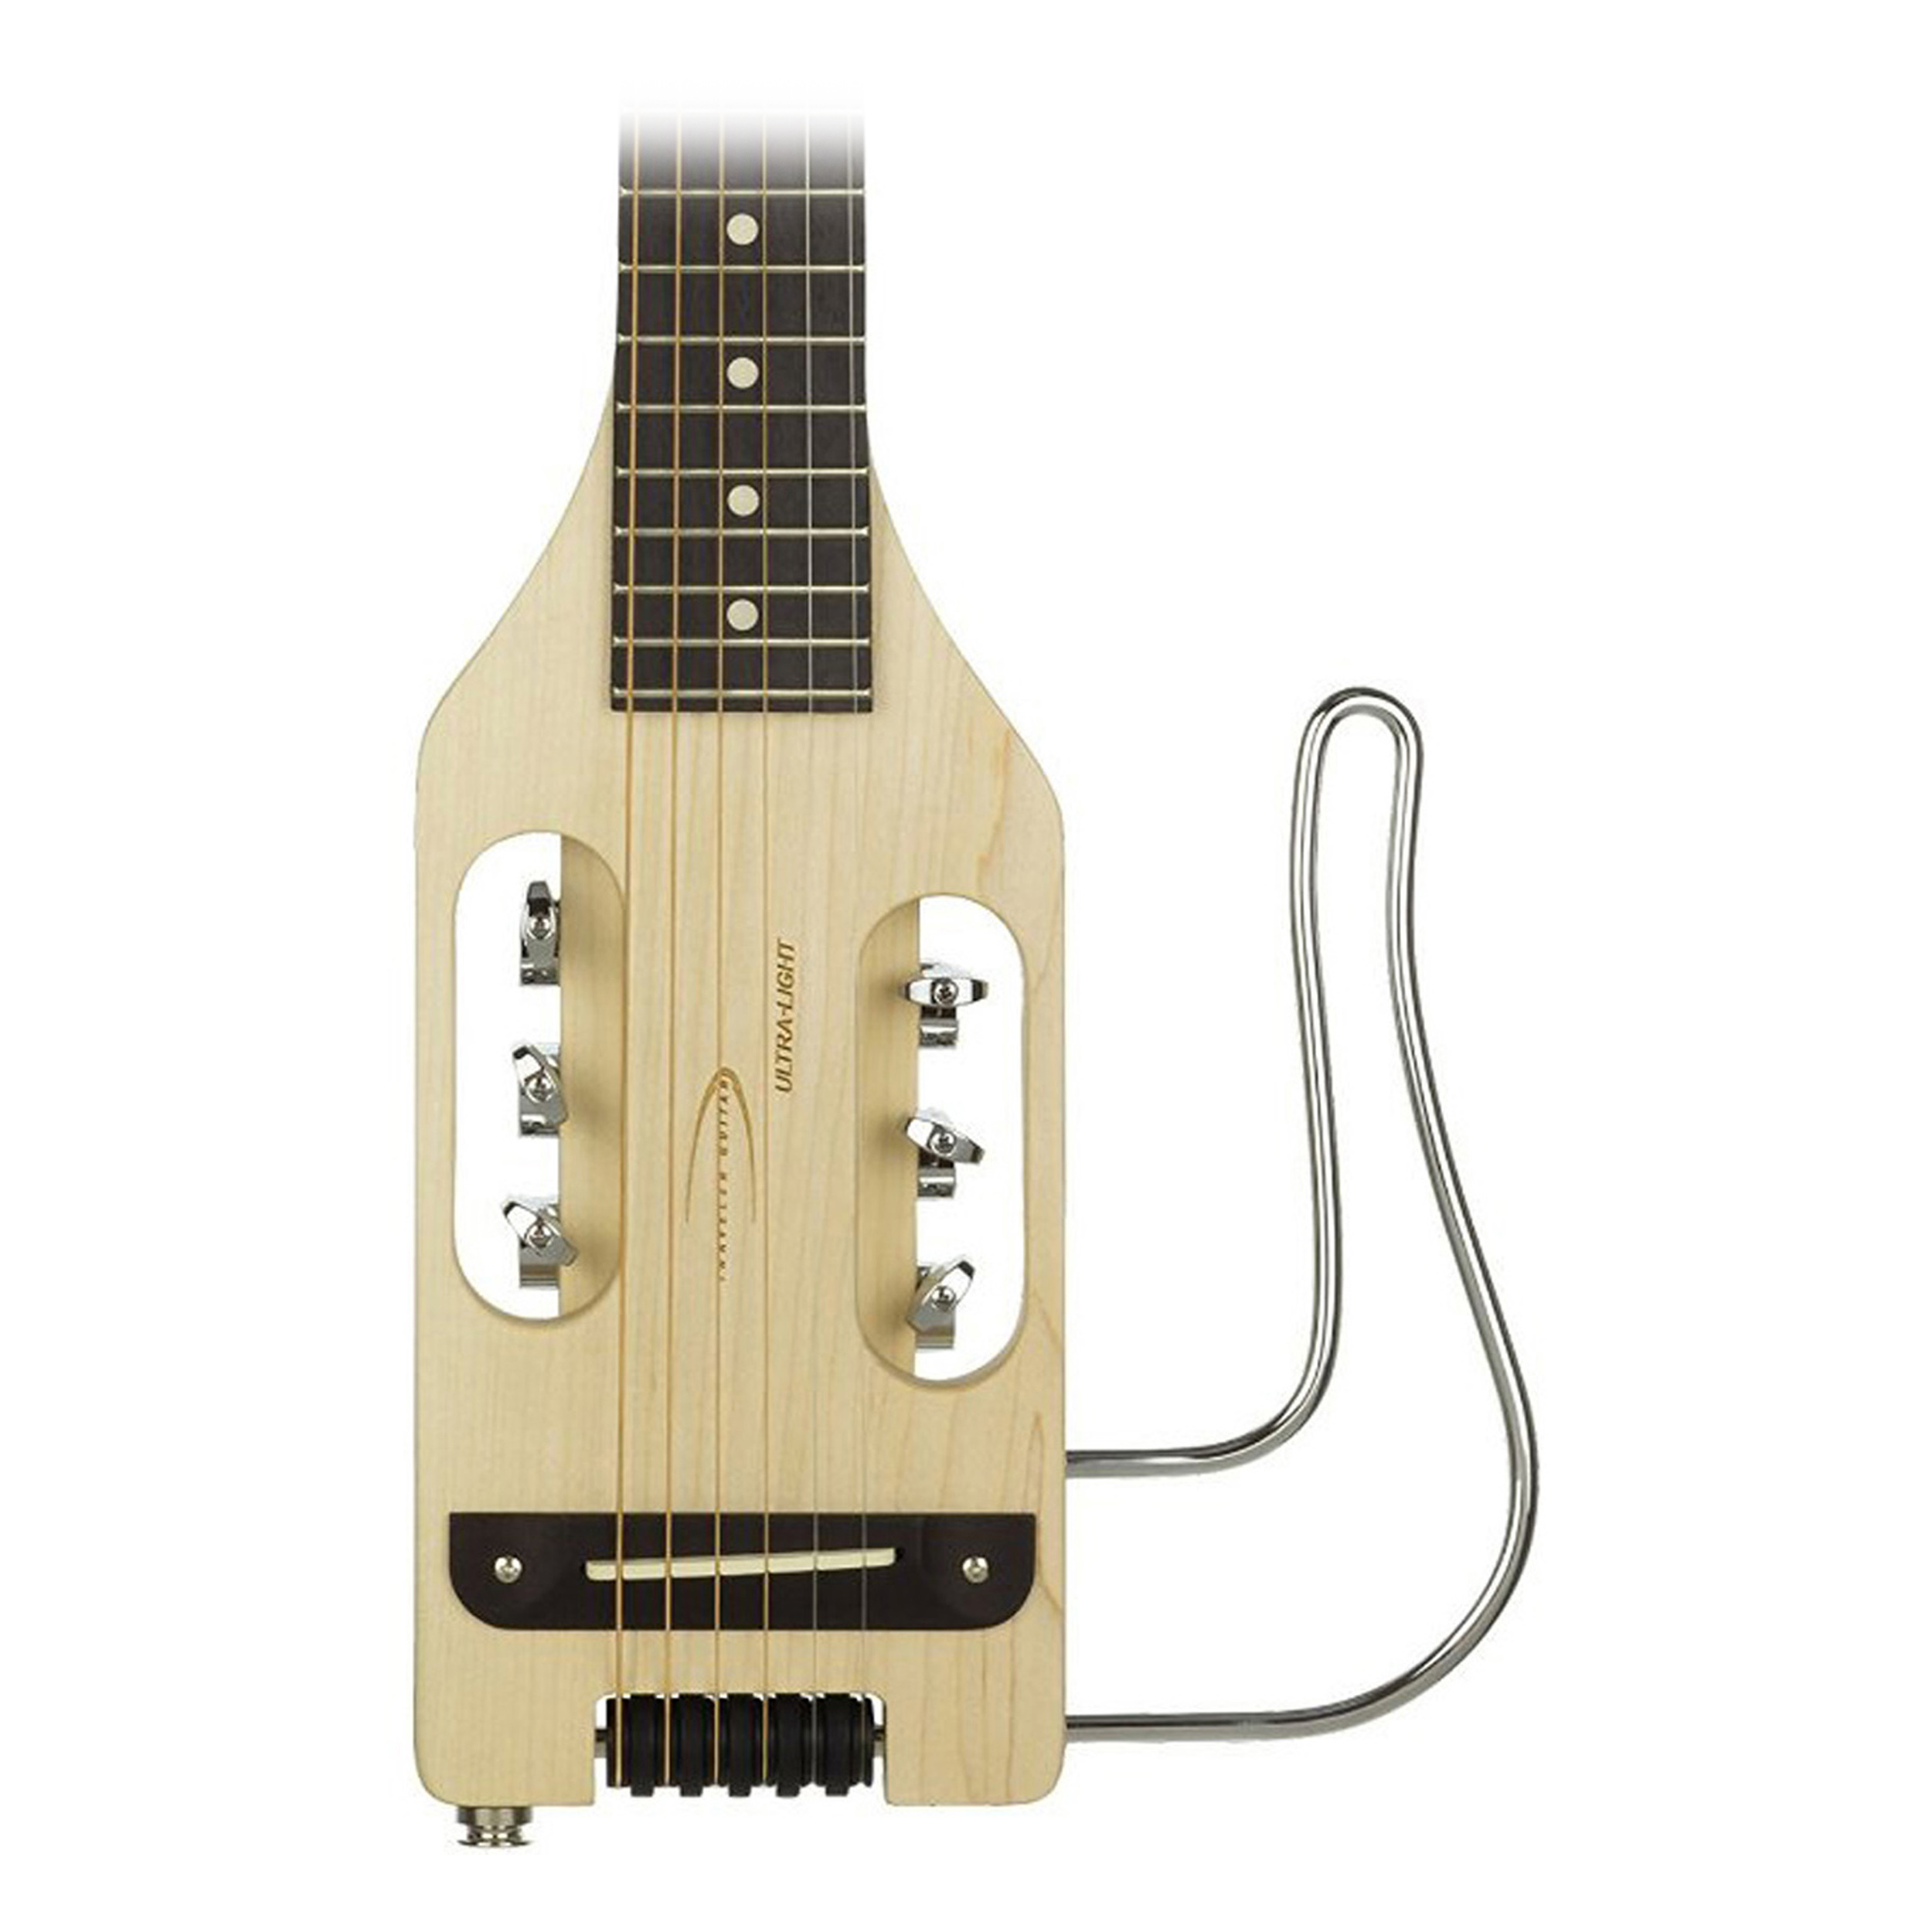 Traveler Guitar Ultra-Light Acoustic-Electric Travel Guitar by Traveler Guitar